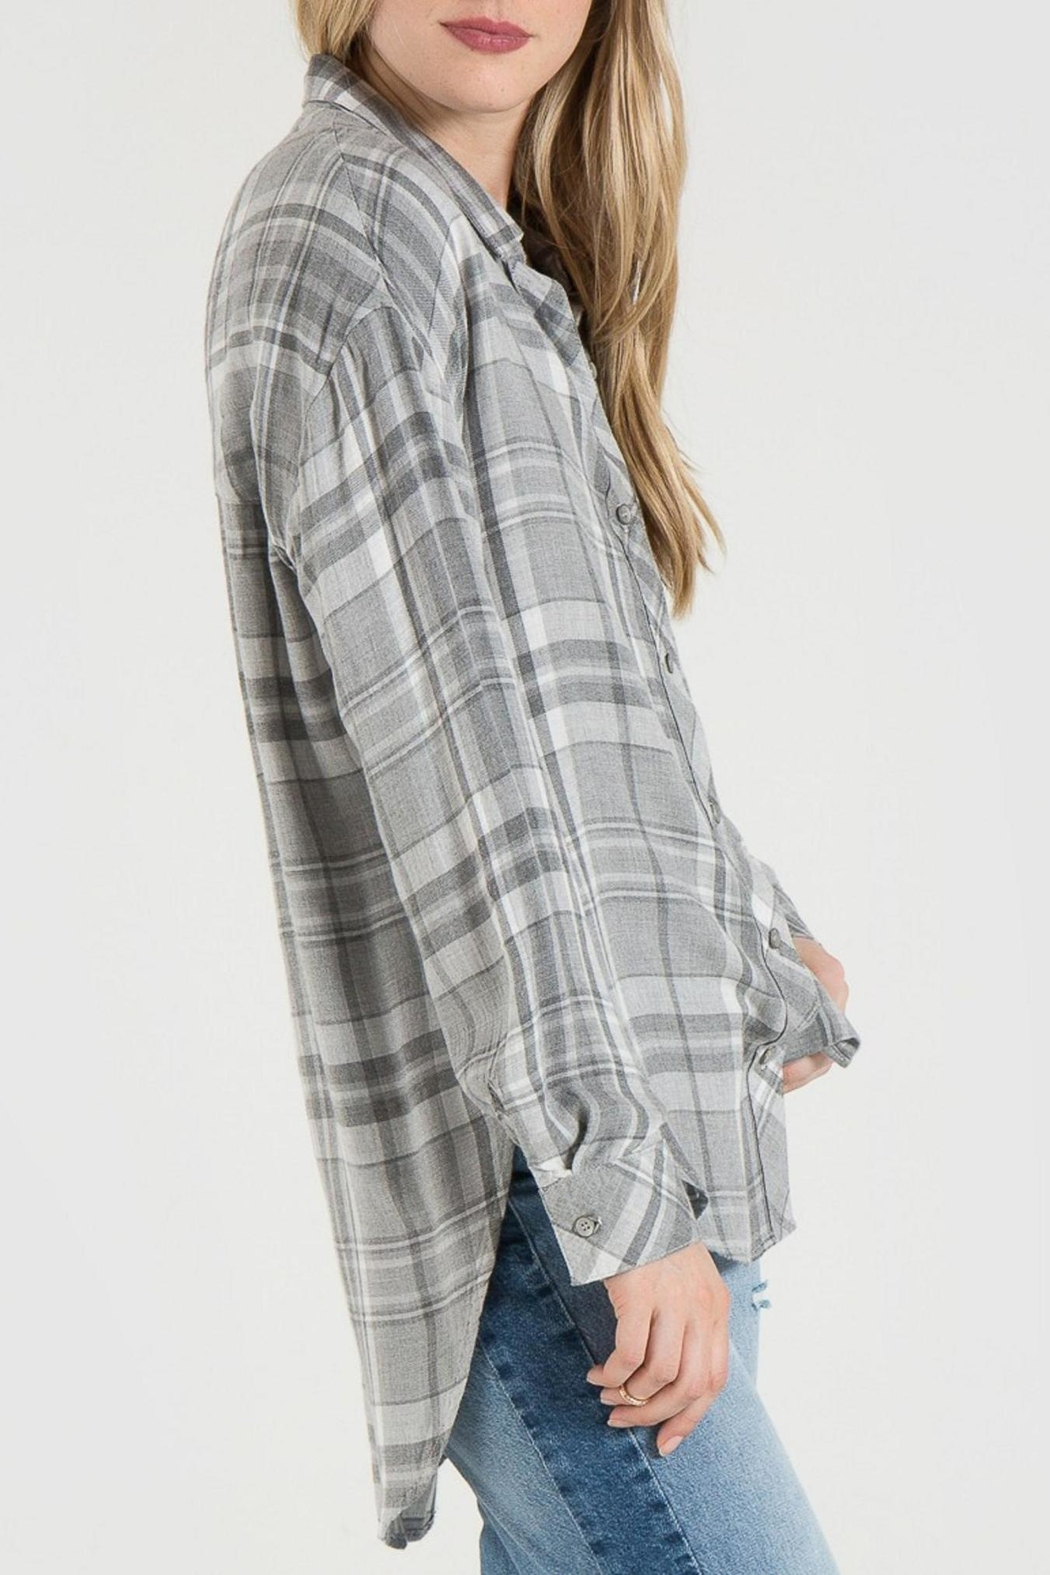 Bella Dahl Grey Plaid Shirt - Side Cropped Image